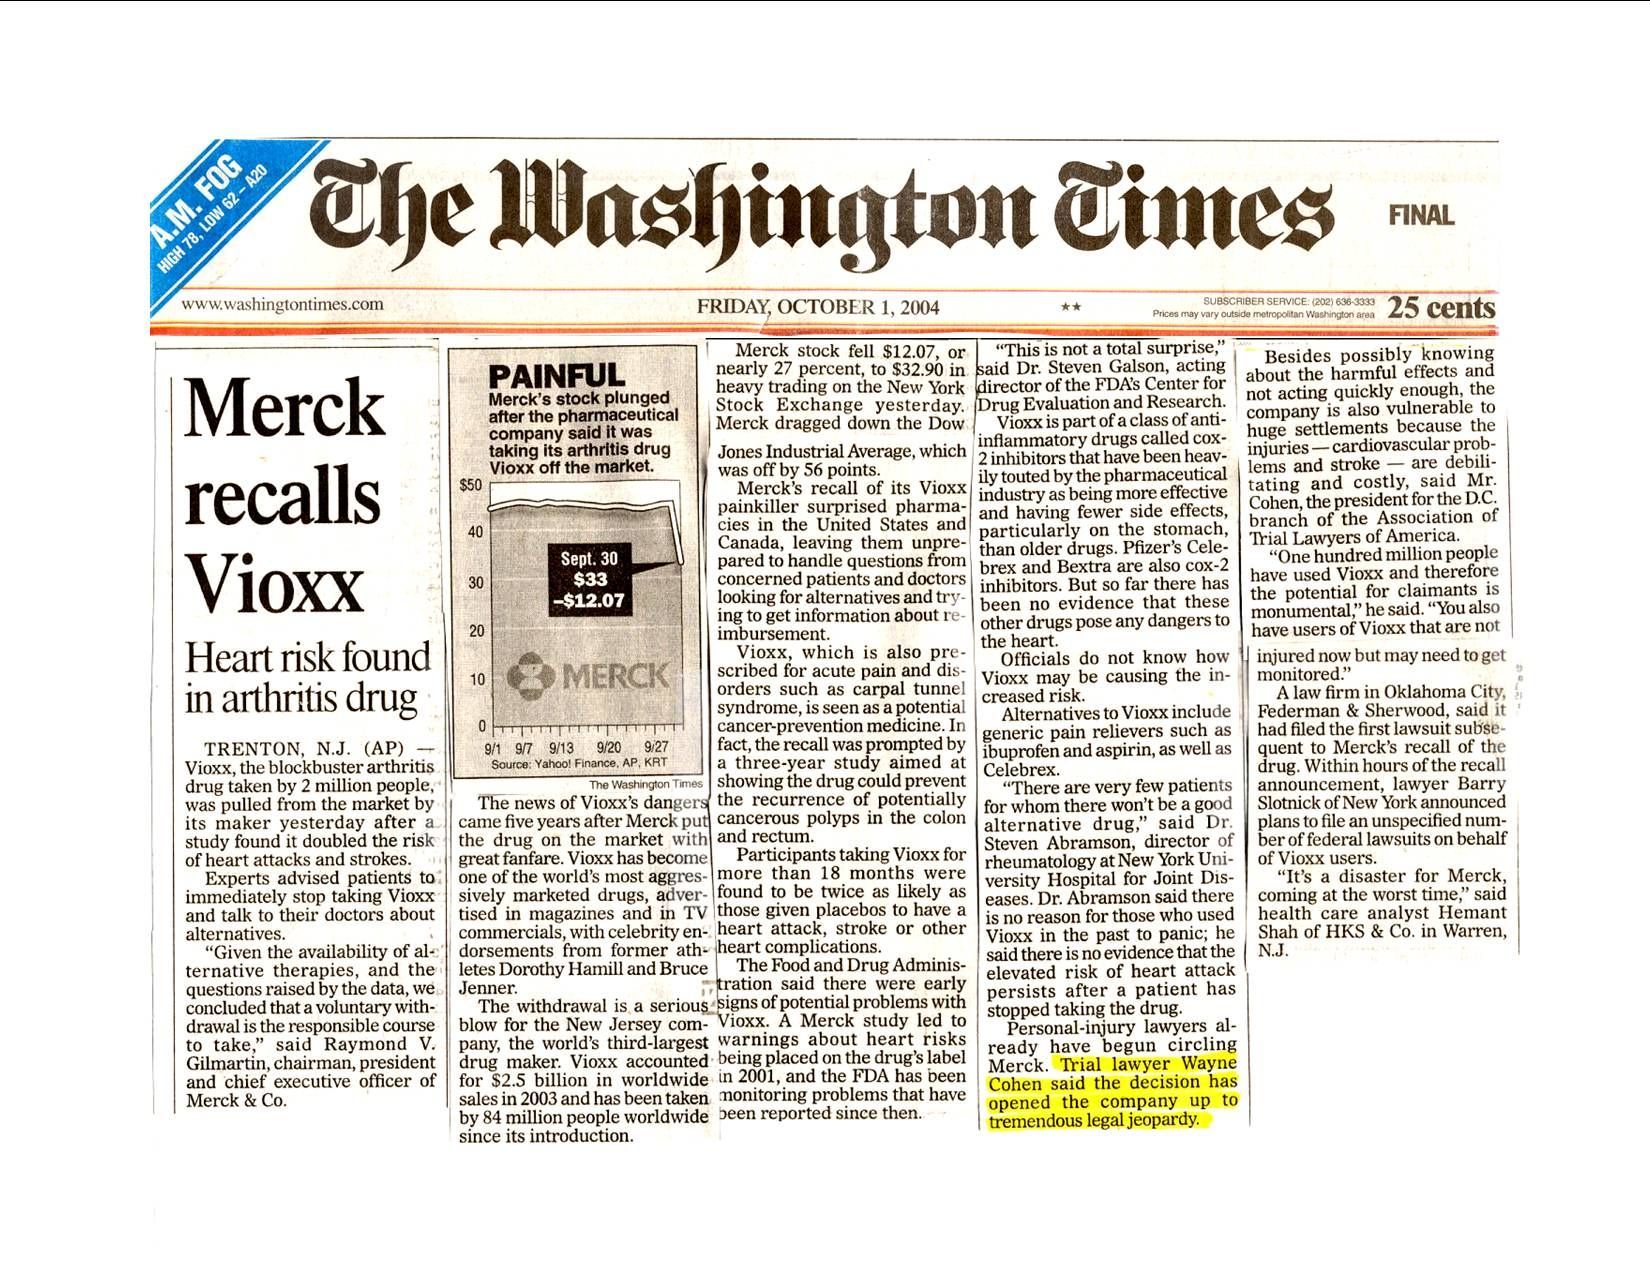 vioxx and merck co essay Product liability lawsuits: merck & co, inc overview liability lawsuit refers to a case against the manufactures of a particular product as a result of injuries sustain due to the products use such products are defined as defective and are thus considered unsafe for use ordinarily, products are put up in the market with the intention of attracting new and existing buyers to use them.